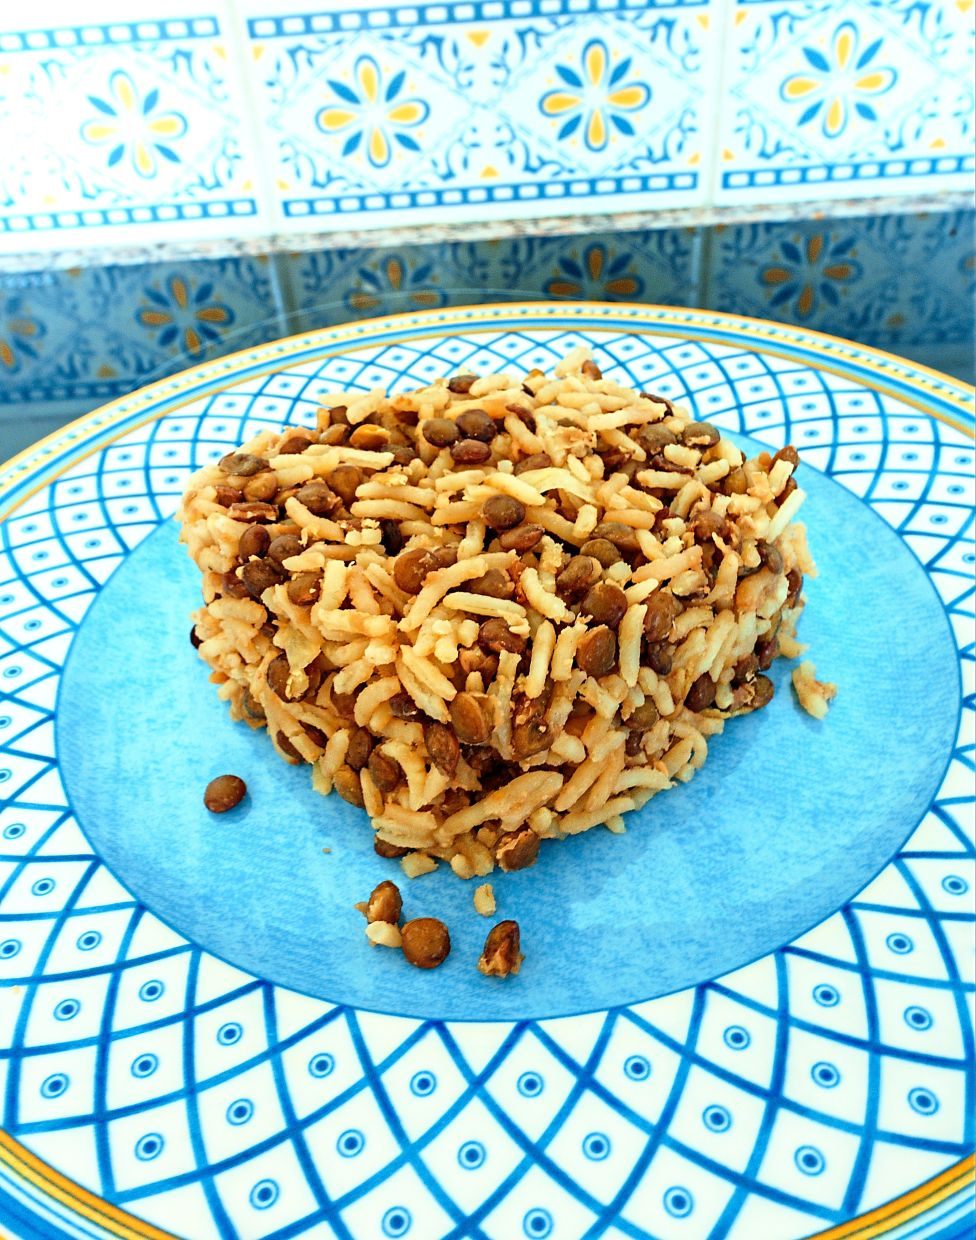 The columnist's lentil rice recipe is great for people on flexitarian diets looking for wholesome meals. — CHRIS CHAN